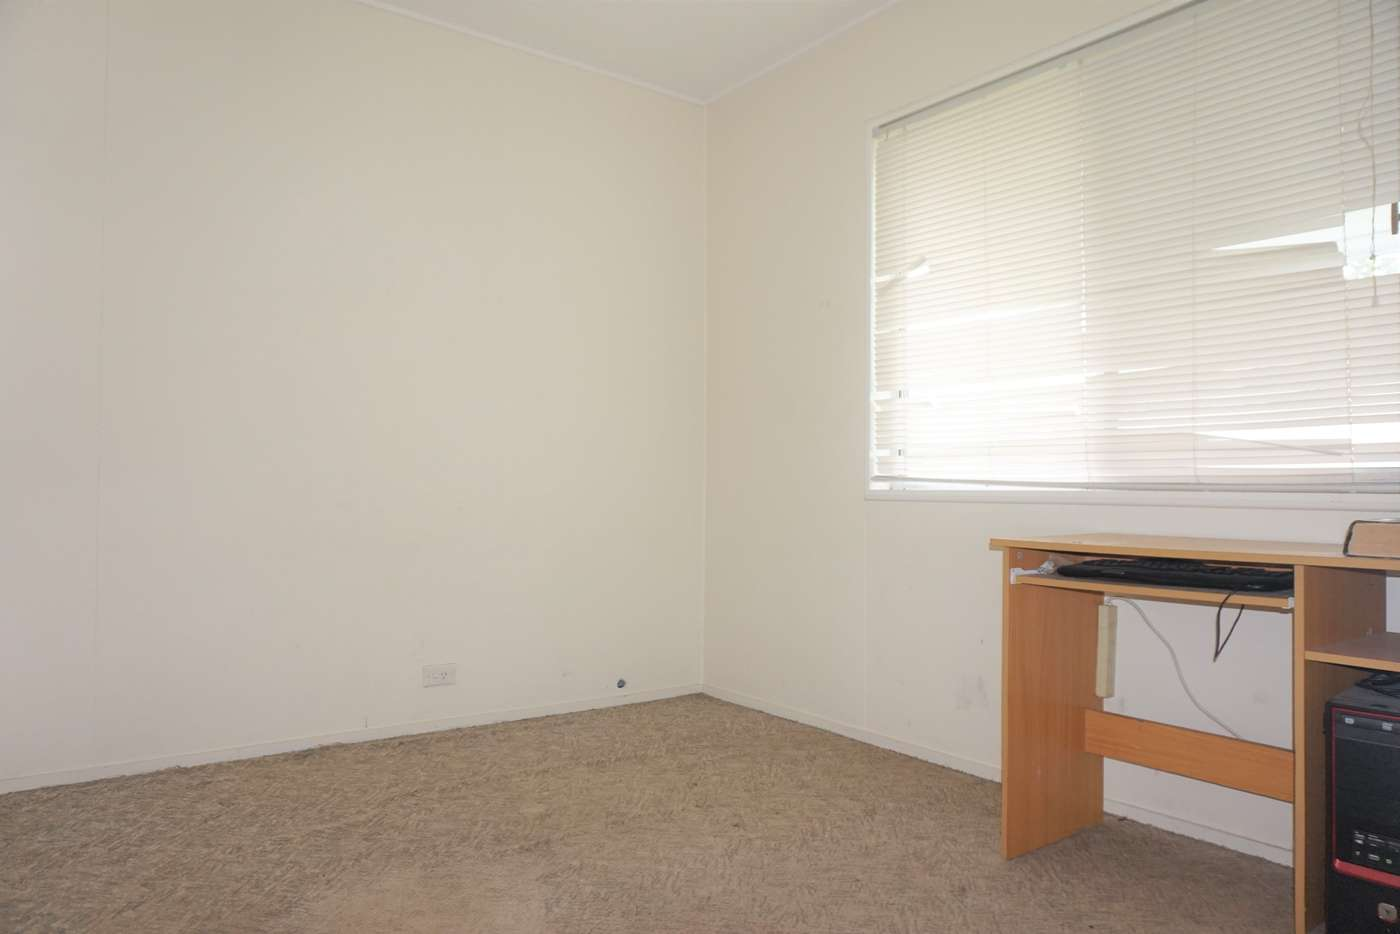 Seventh view of Homely house listing, 32 Huron Street, Woodridge QLD 4114